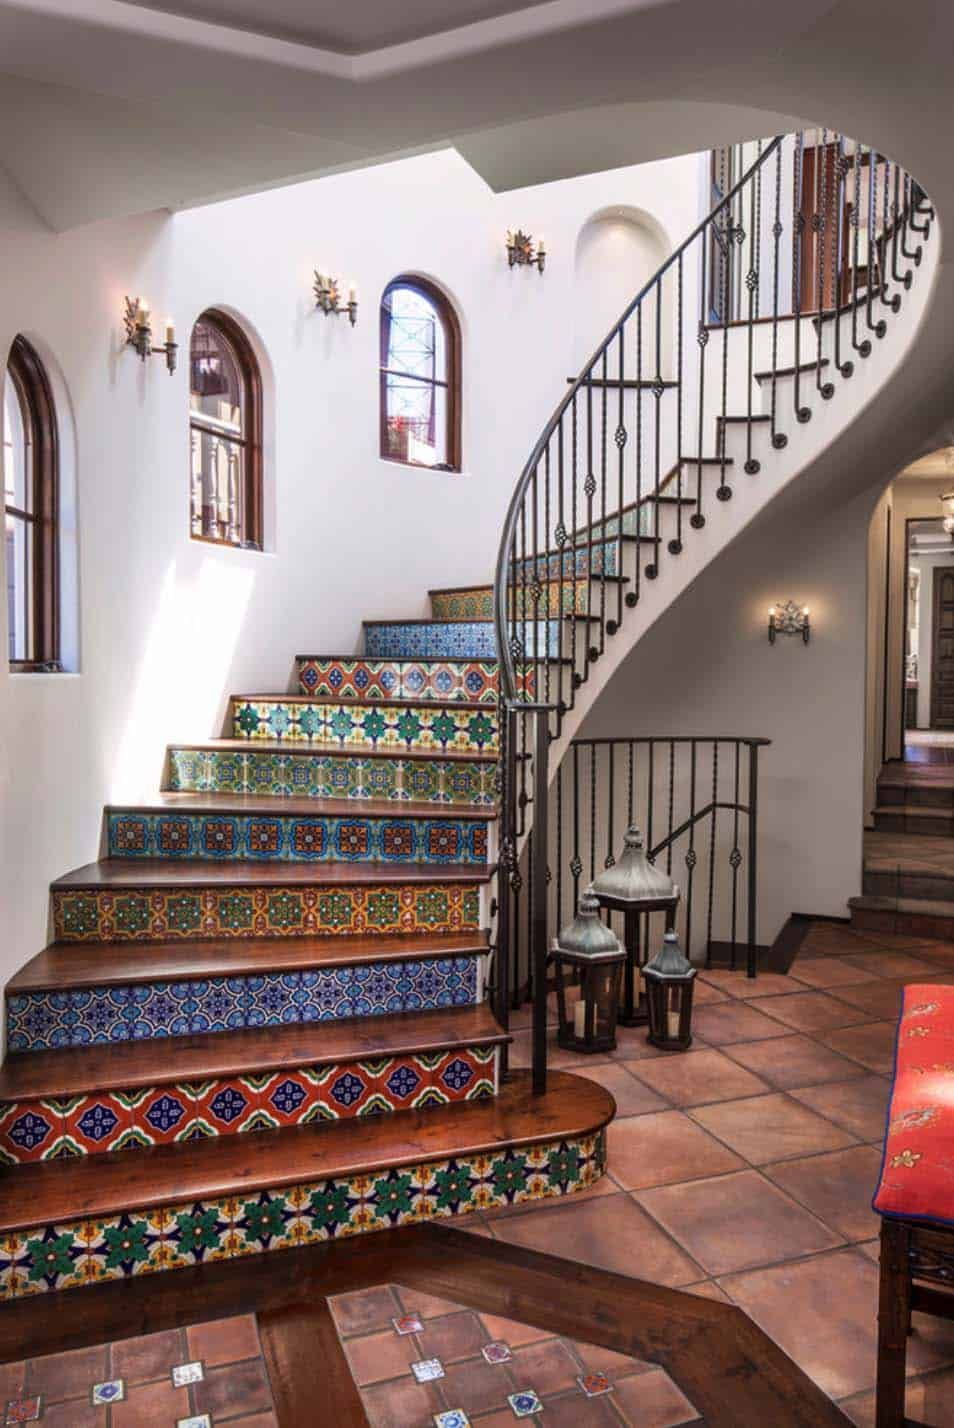 The staircase is a major focal point for the entire house thanks to its colorful tile design